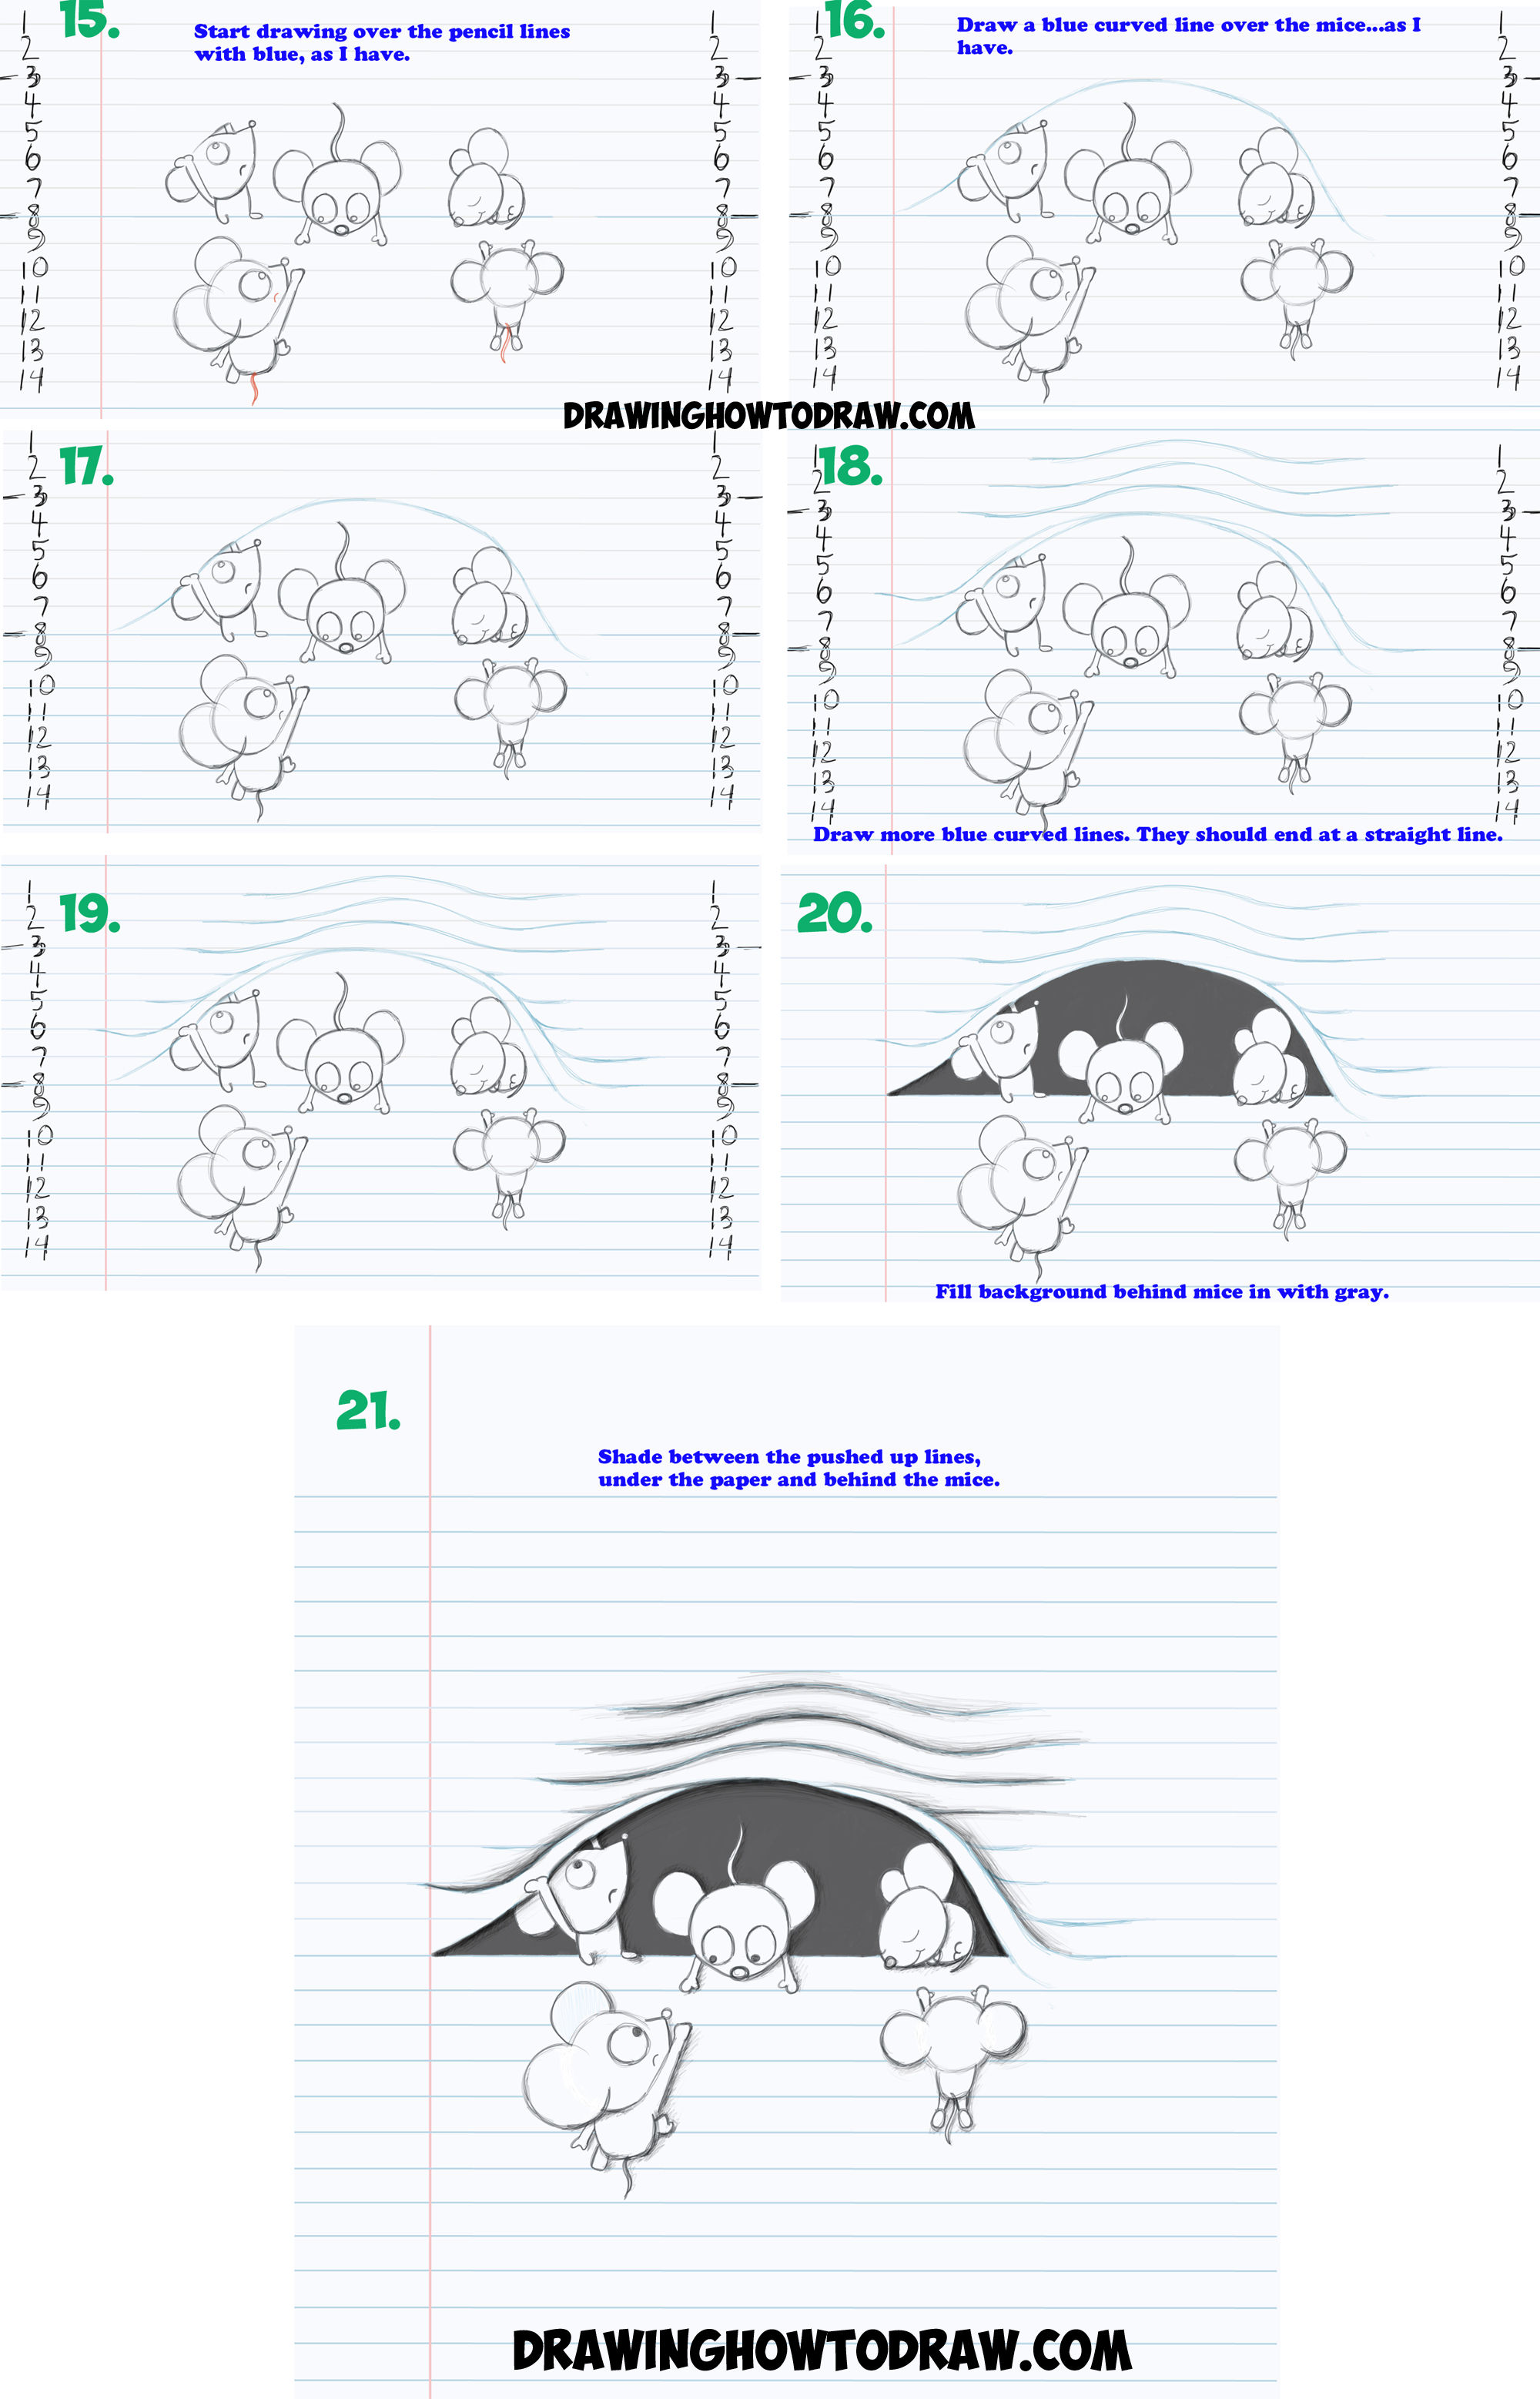 Learn How to Draw Optical Illusion of Cartoon Mice Characters Climbing Inside of Lined Notebook Paper with Simple Steps Drawing Lesson for Children and Beginners